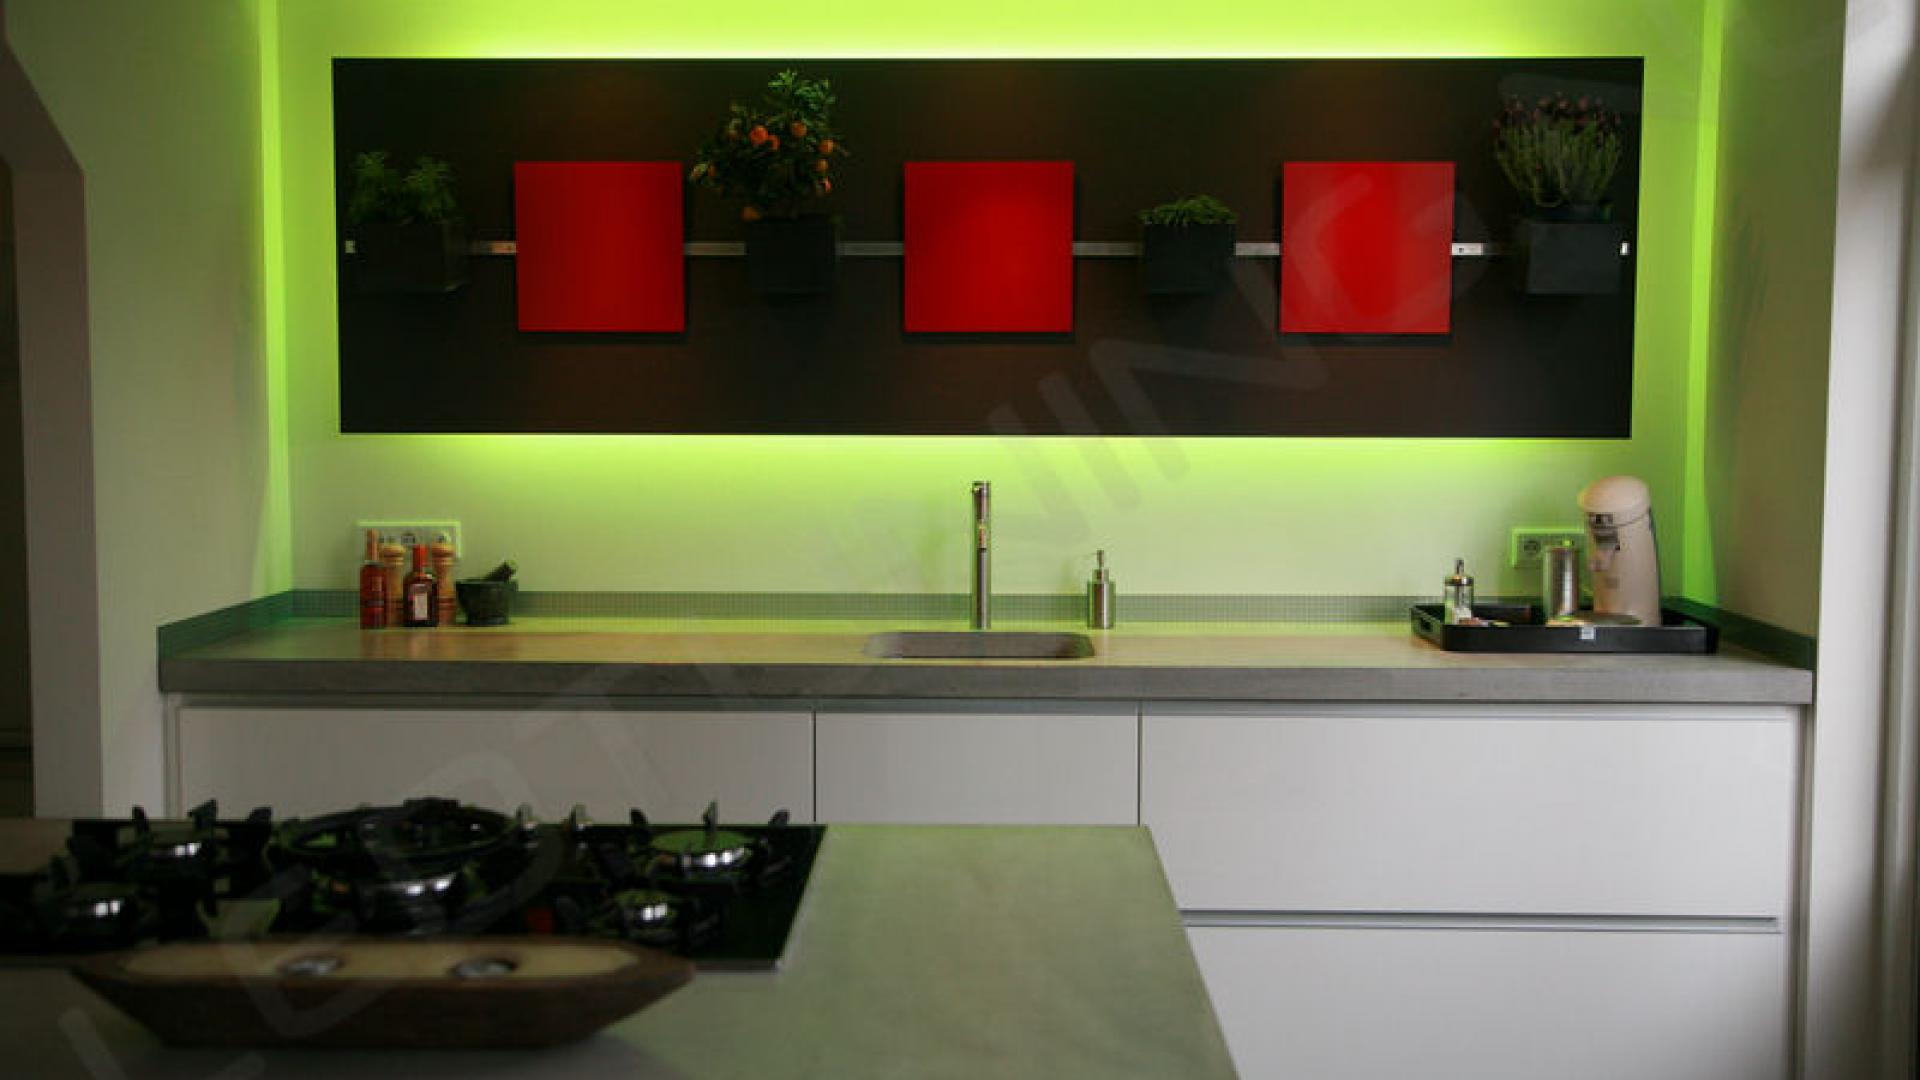 Kitchen Lighting Replaced By Energy Efficient Led Lighting